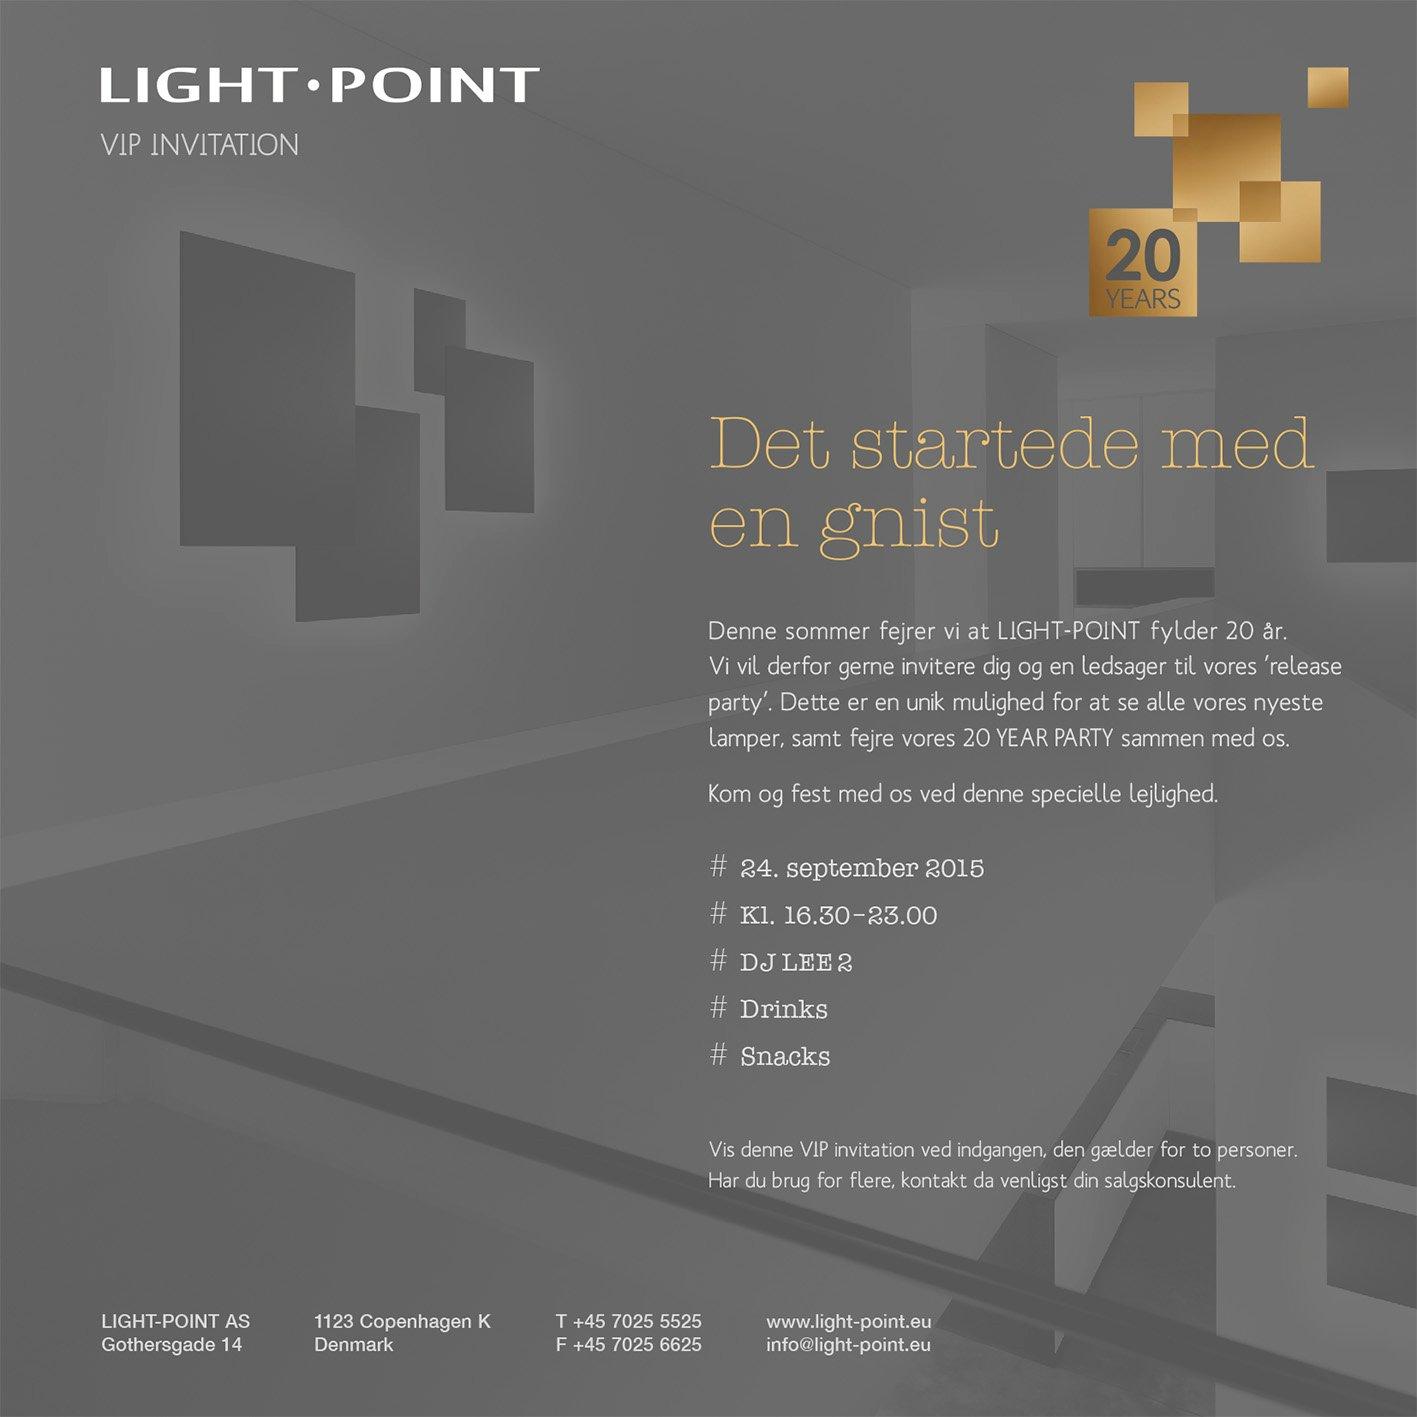 Invitationskort, flyer design for Light-Point